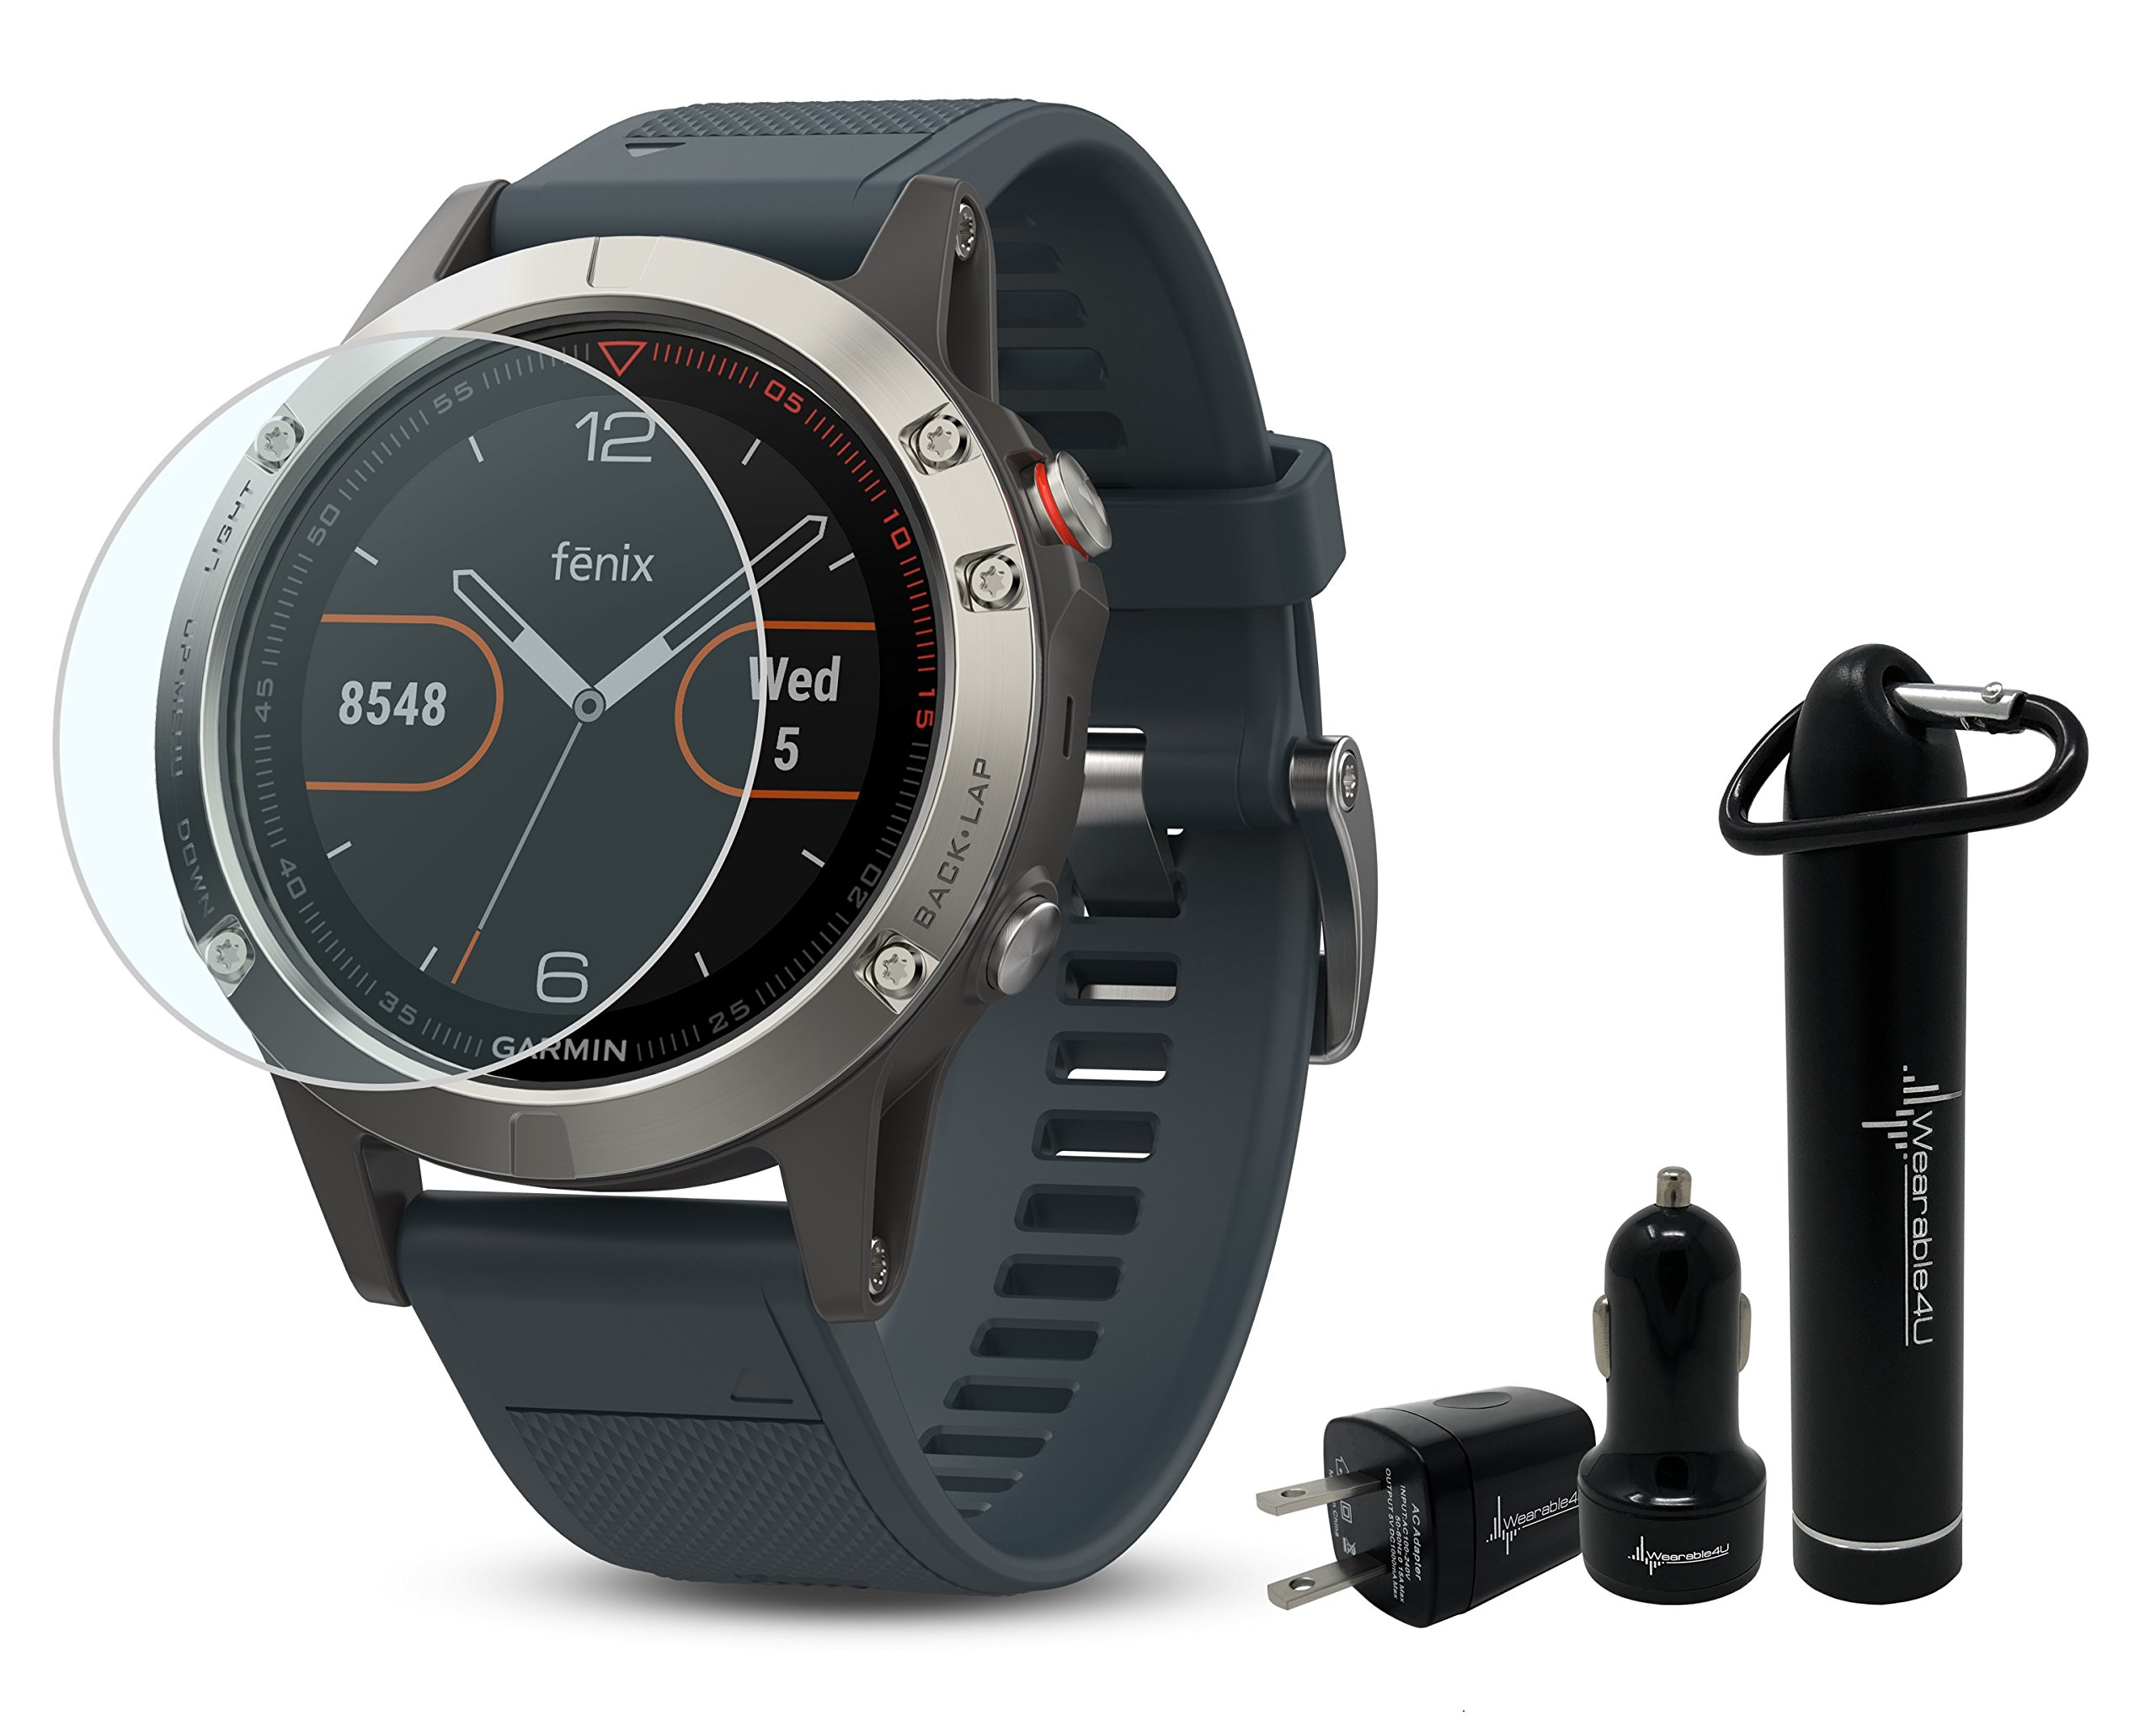 Garmin Fenix 5 GPS Multisport Watch Ultimate Bundle | Includes Garmin Fenix 5 Watch (47mm), HD Glass Screen Protector, Wearable4U Power Bank, Wearable4U Car / Wall USB Charging Adapters |